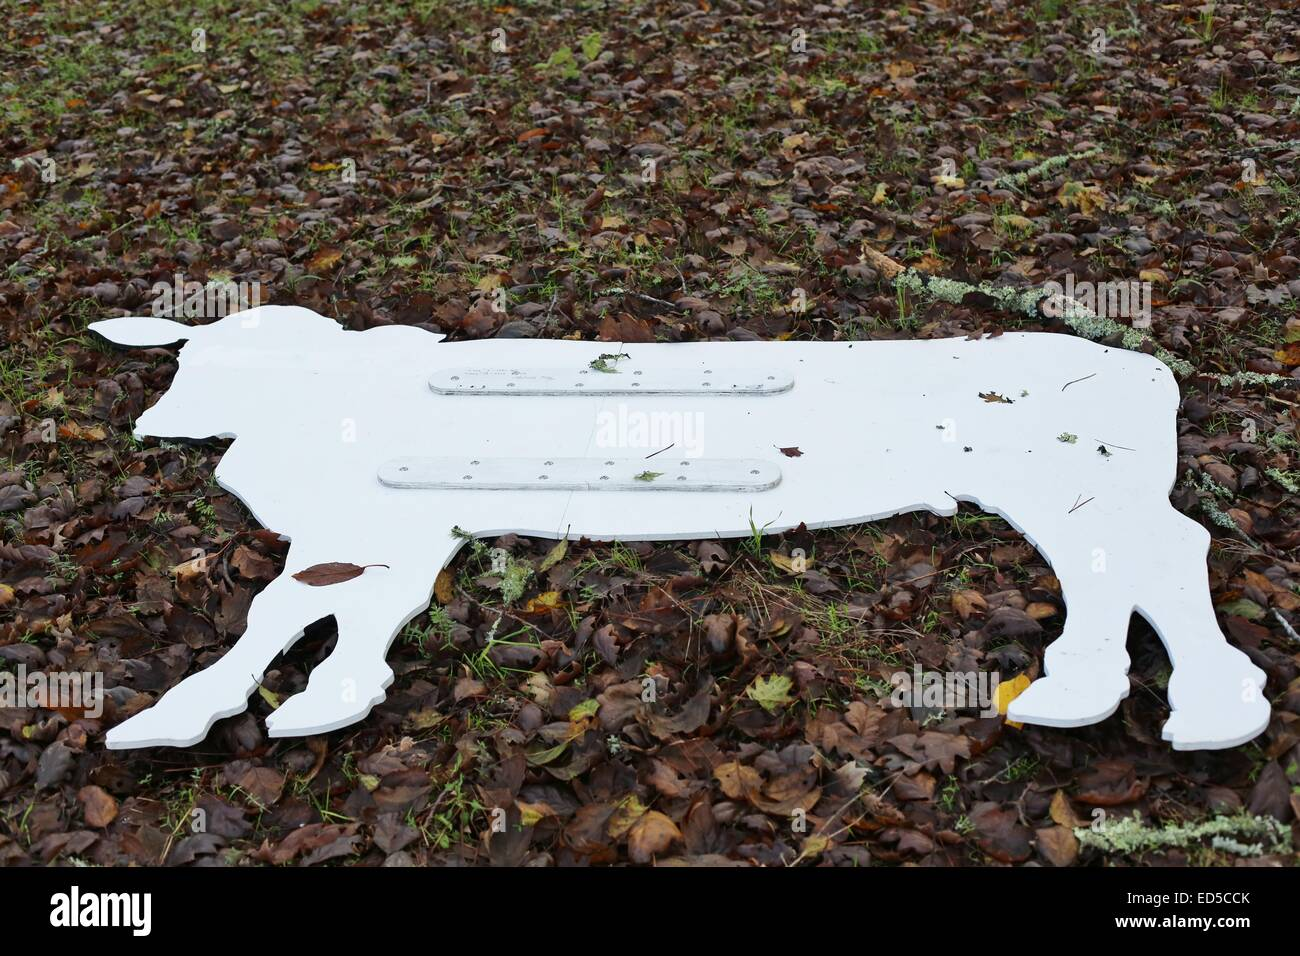 A flattened cutout cow on the ground. - Stock Image